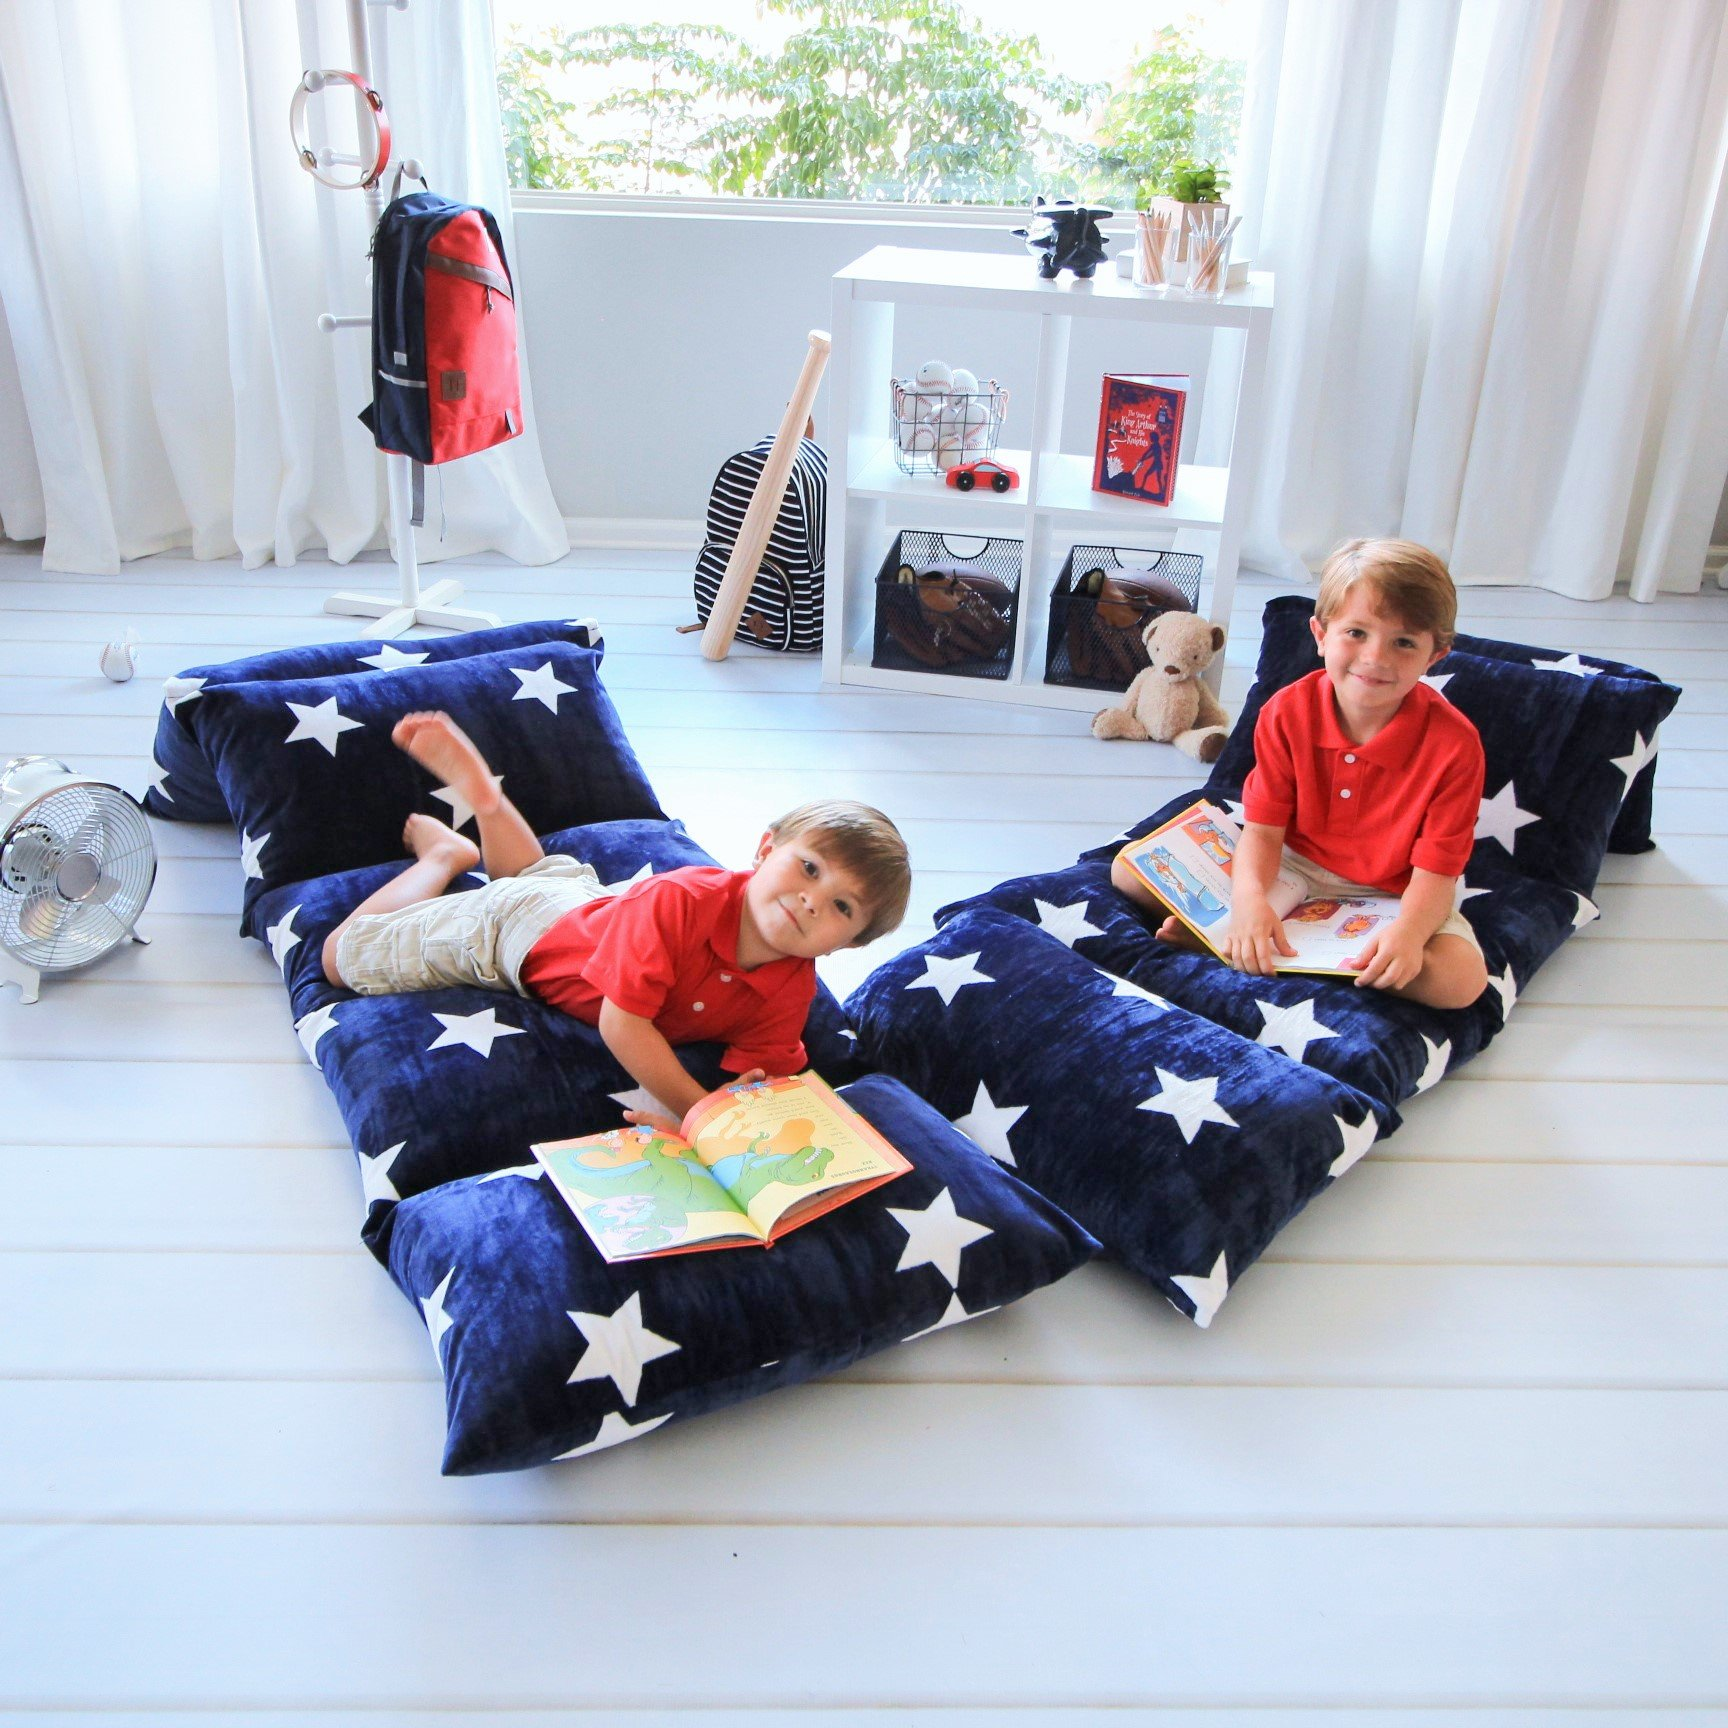 Butterfly Craze Kids Floor Pillow Fold Out Lounger Fabric Cover for Bed and Game Rooms, Reading, Beanbag, Ottoman, Recliner, Chair, Couch Alternative. Blue. Queen Pillows Not Included by Butterfly Craze (Image #7)